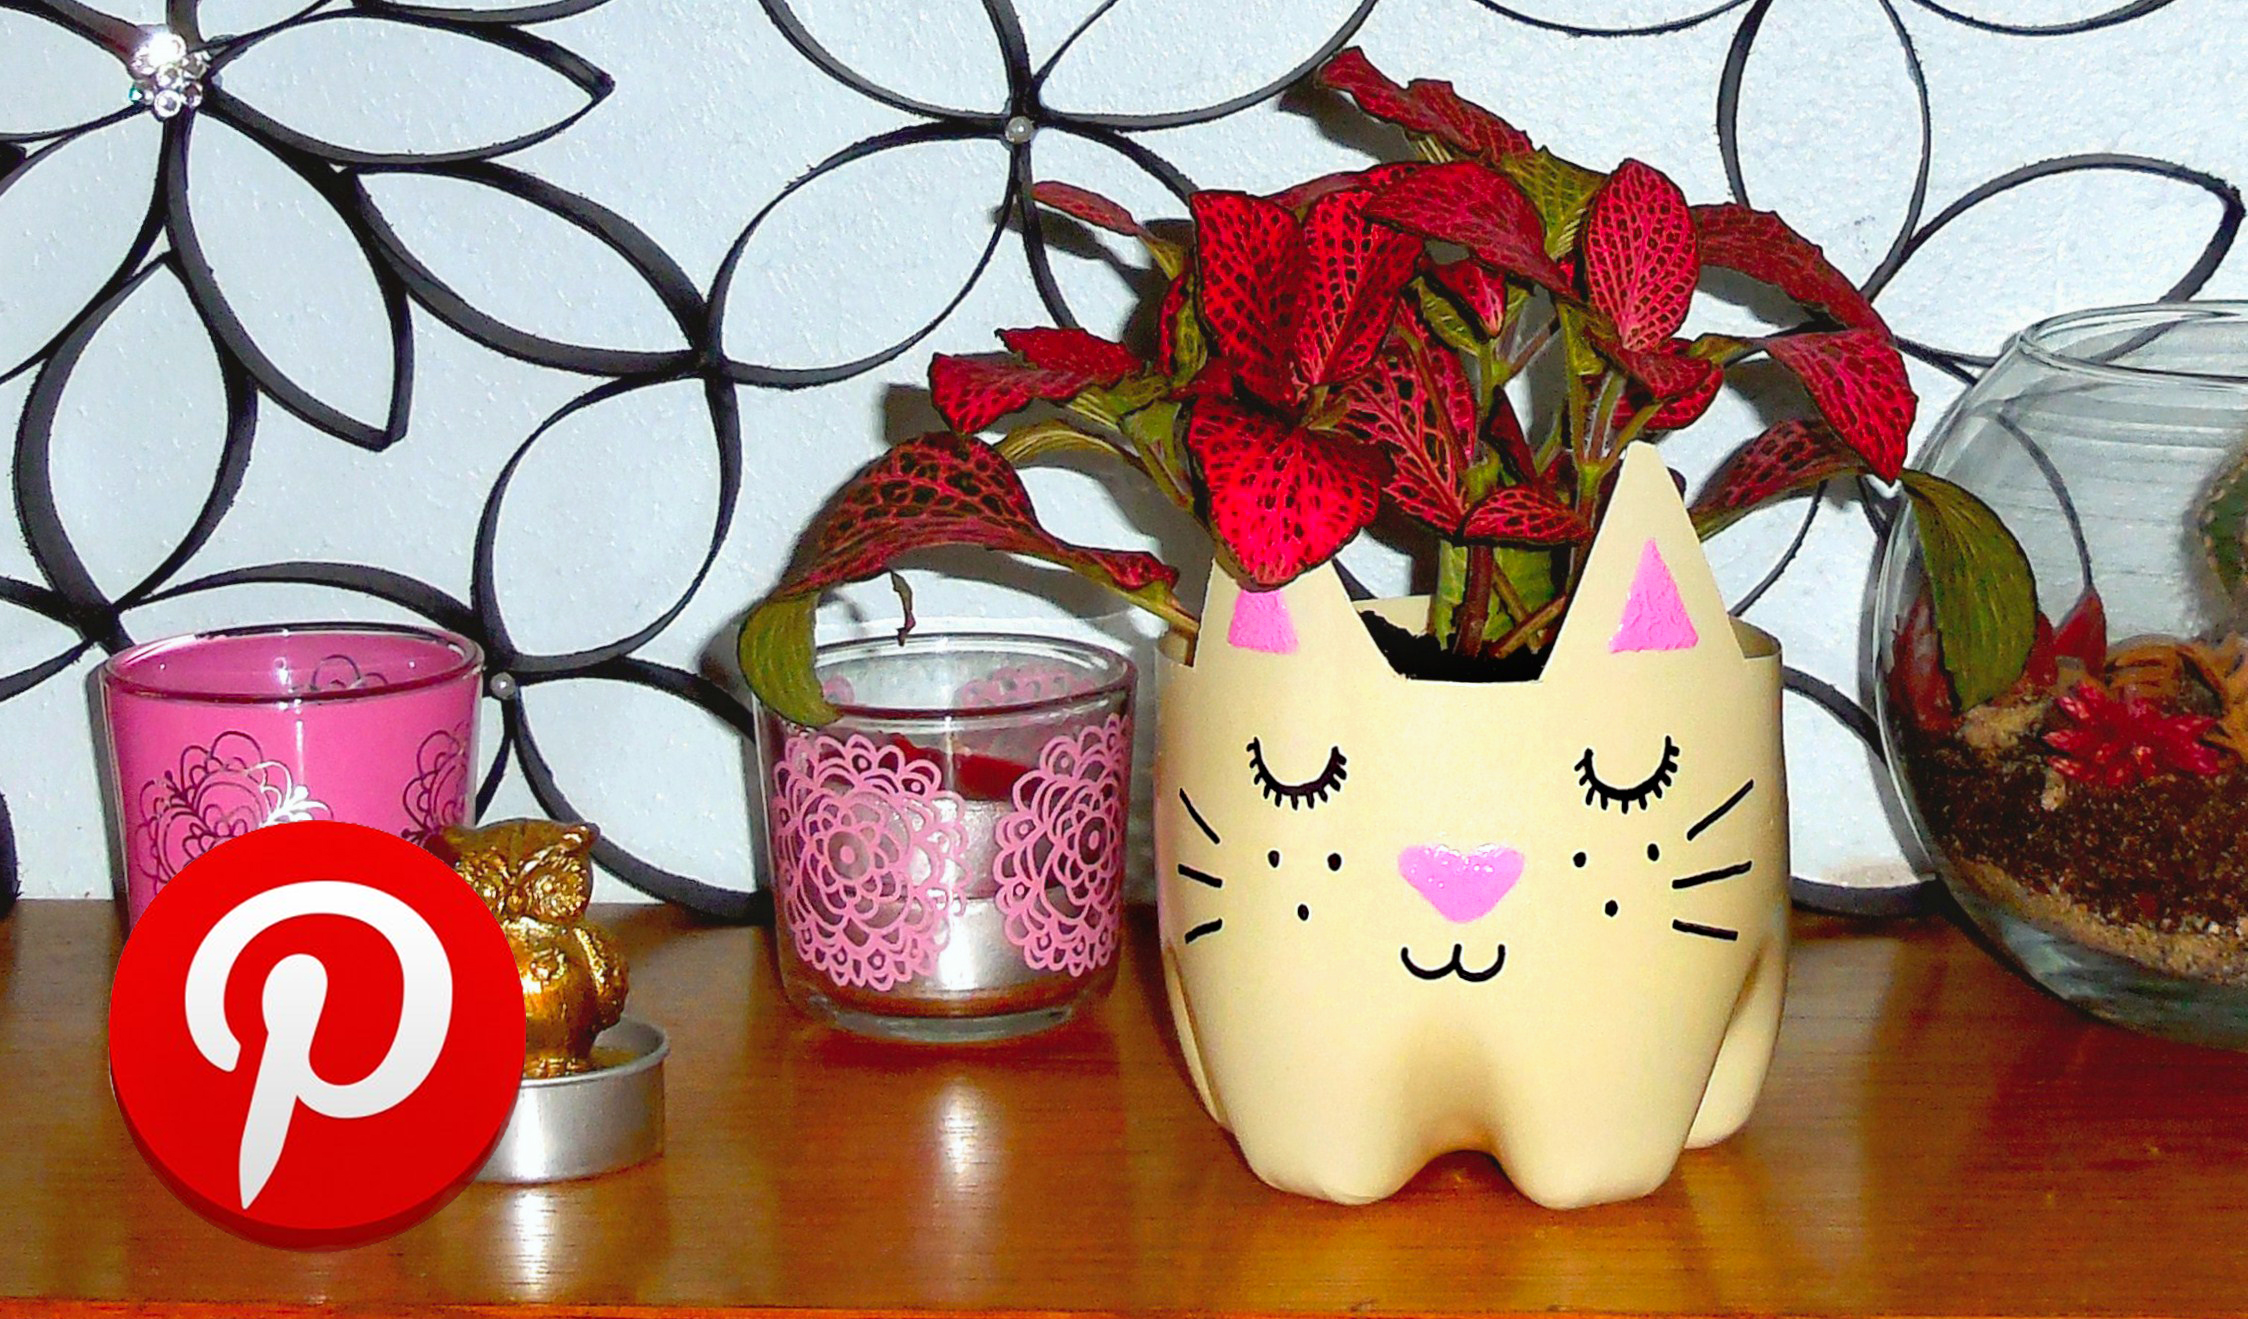 DIY cat planter! ❤ Pinterest recreation | DIY room decor